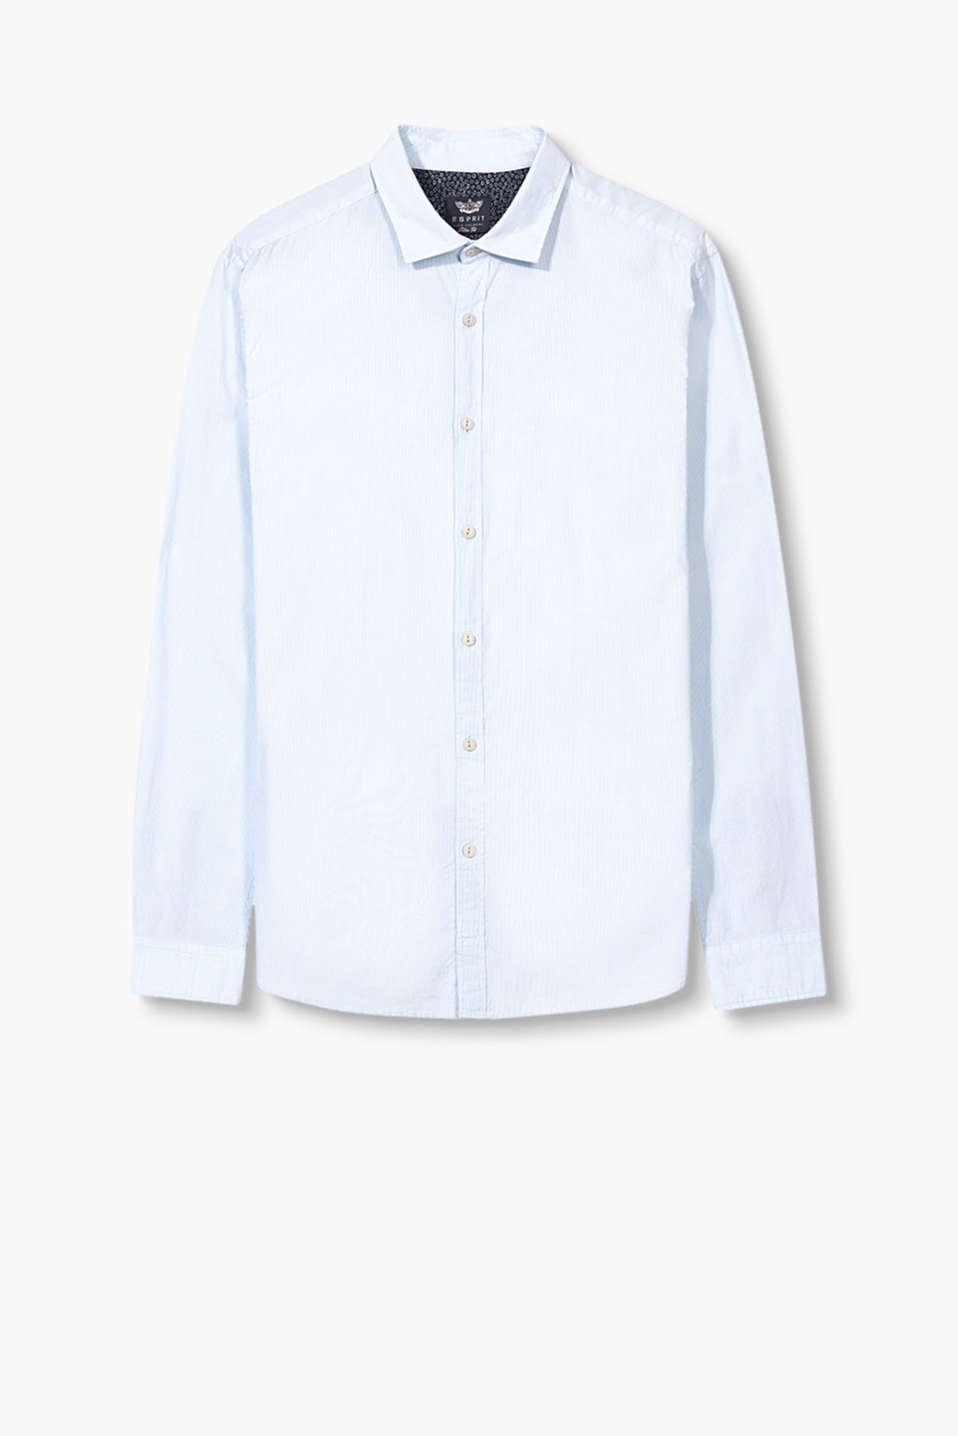 Shirt in fine cotton with a fine striped print and shark collar